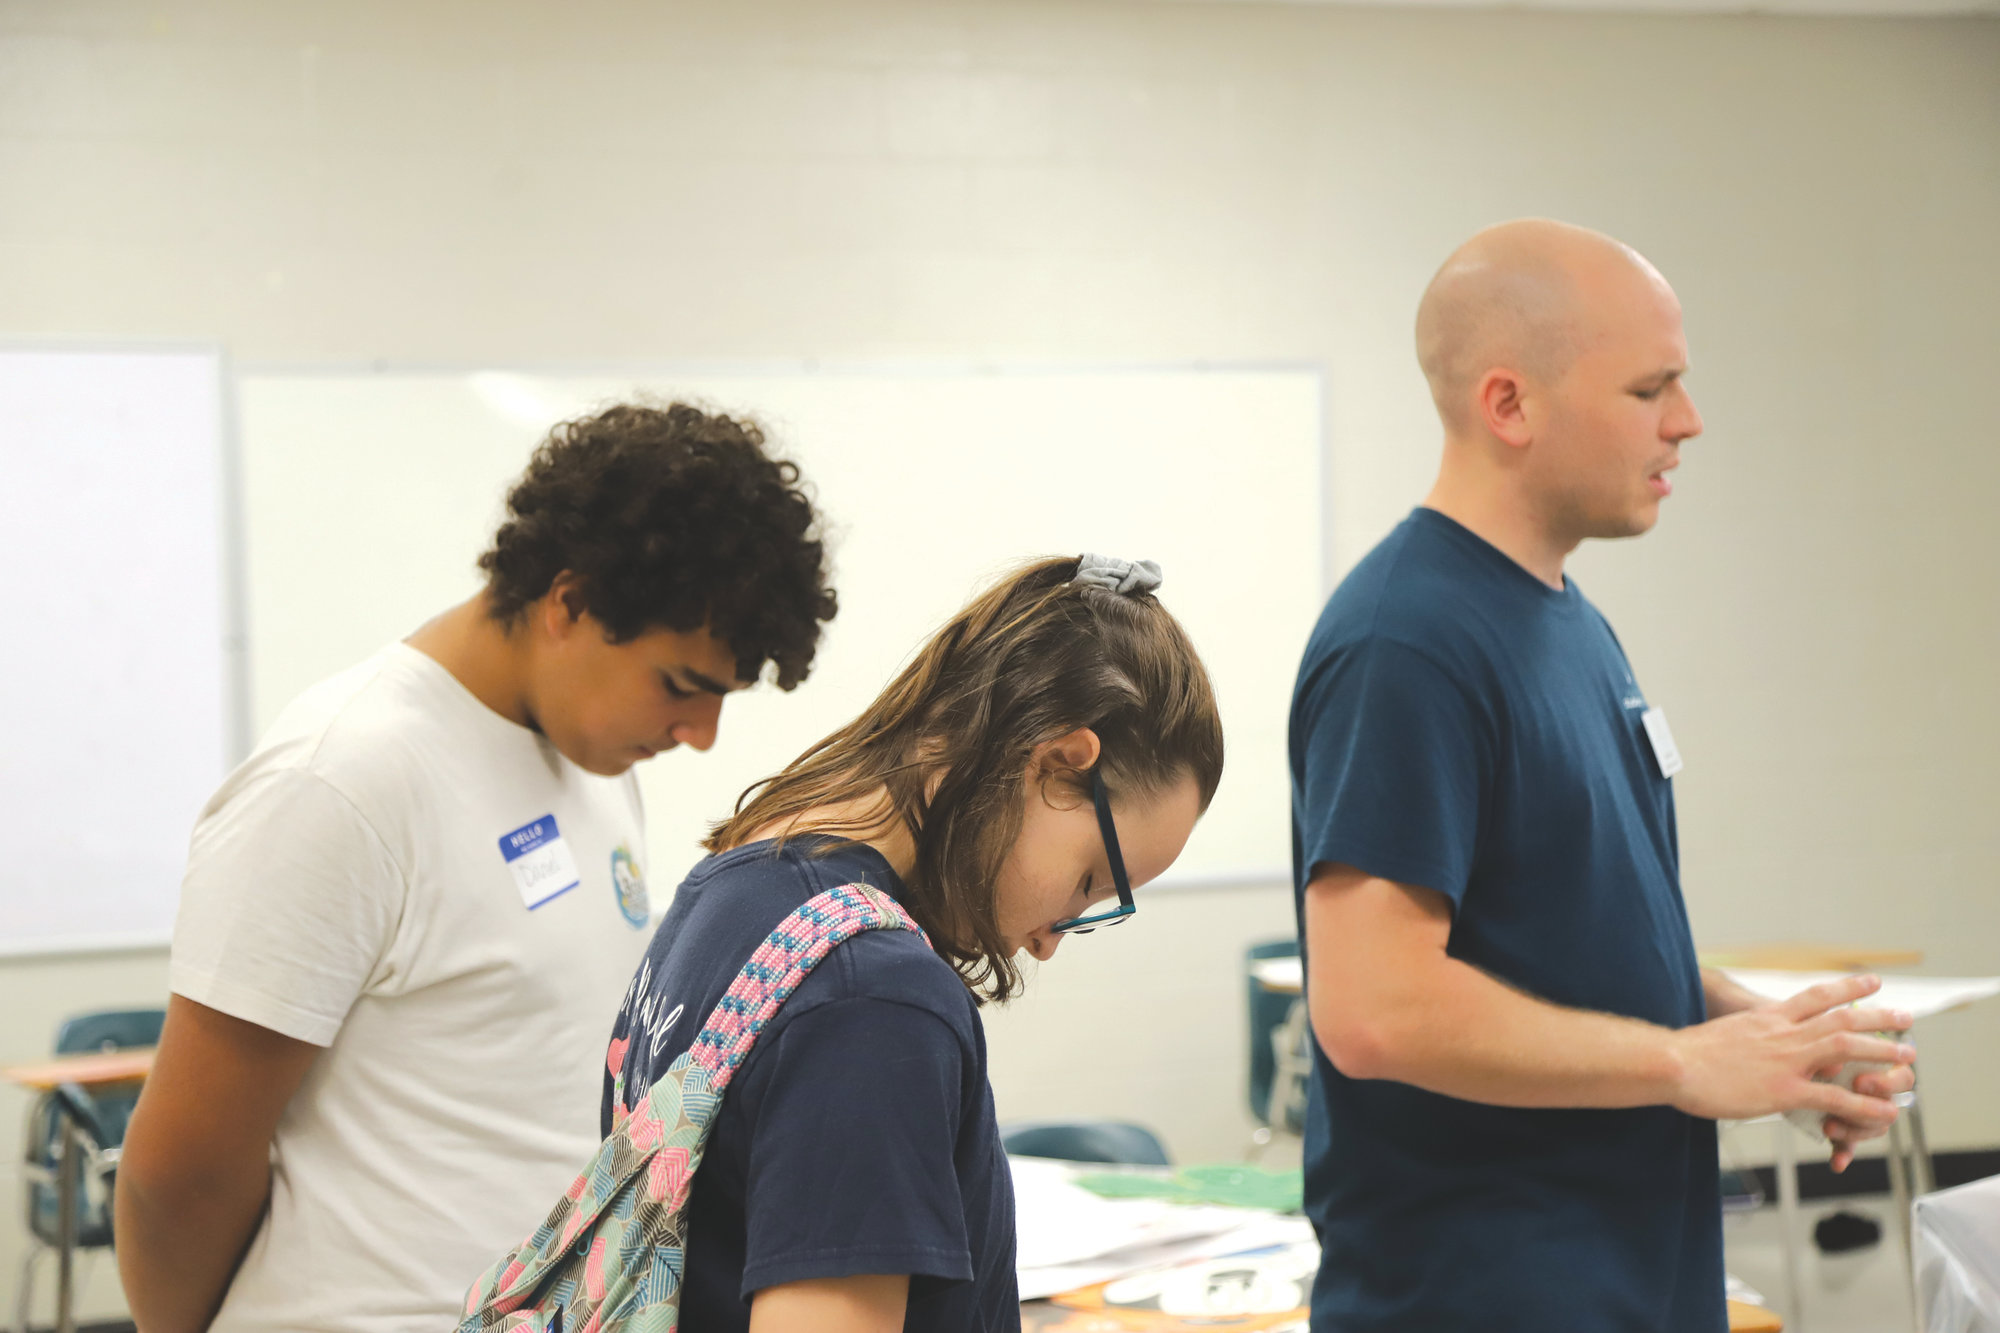 From left, Daniel Fleitas, Lindsey Laity and Matt Sprinkle say a prayer in a teacher's classroom at Chestnut Oaks Middle School.